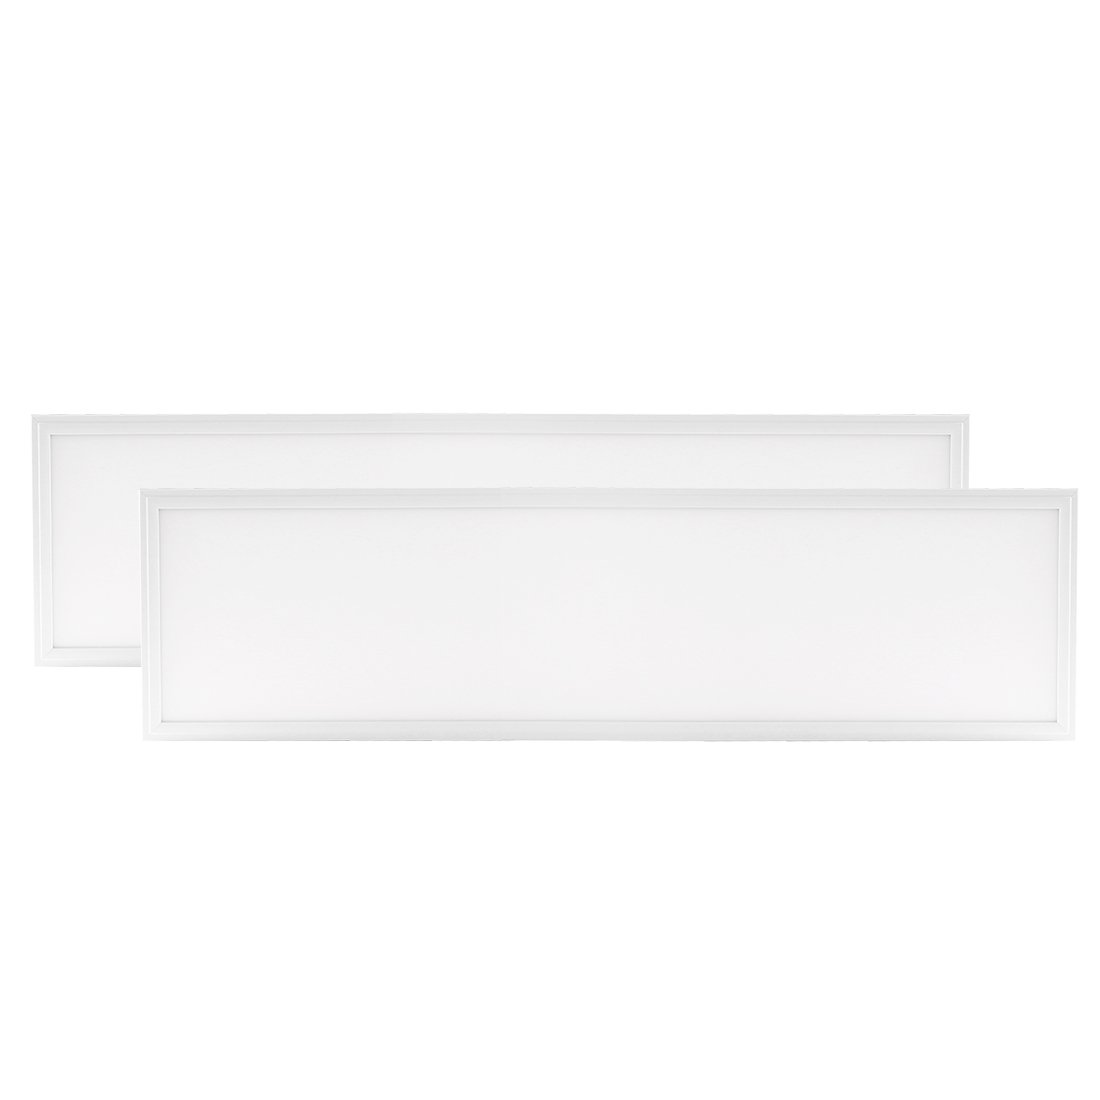 uxcell 2 Pack LED Panel Light, UL Listed, DLC-Qualified 1ft X 4ft 40W LED Flat Square LED Recessed Ceiling Light Panel Downlight Lamp Cool White 4000K